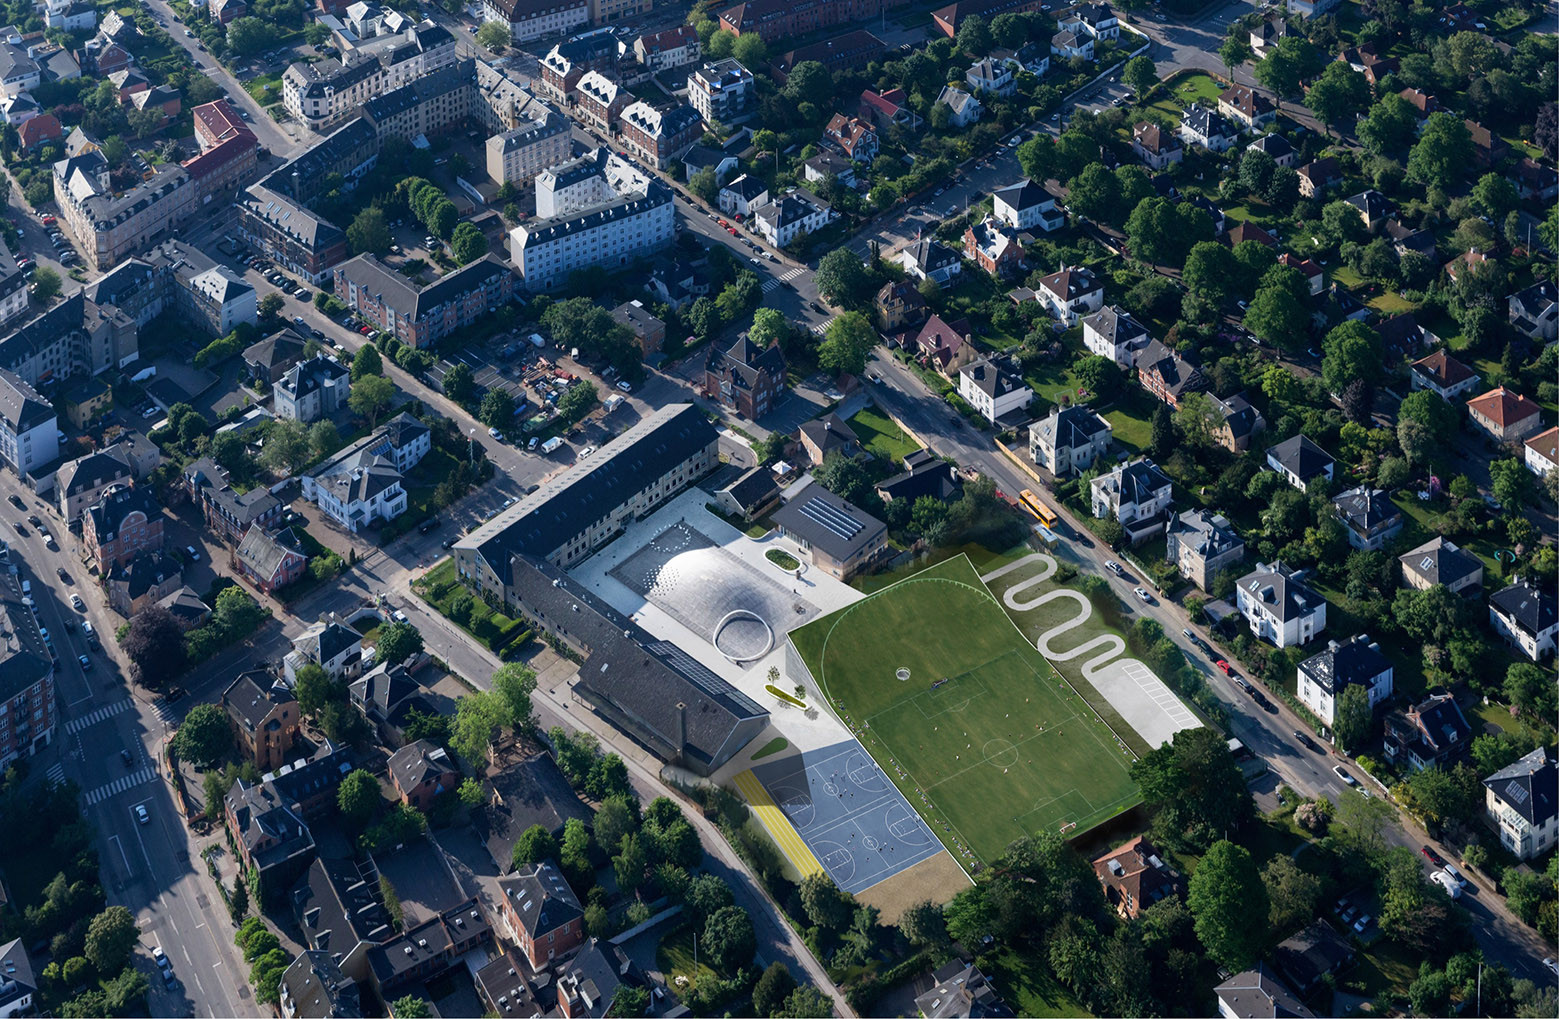 Sports & Arts Expansion at Gammel Hellerup Gymnasium / BIG, © Iwan Baan